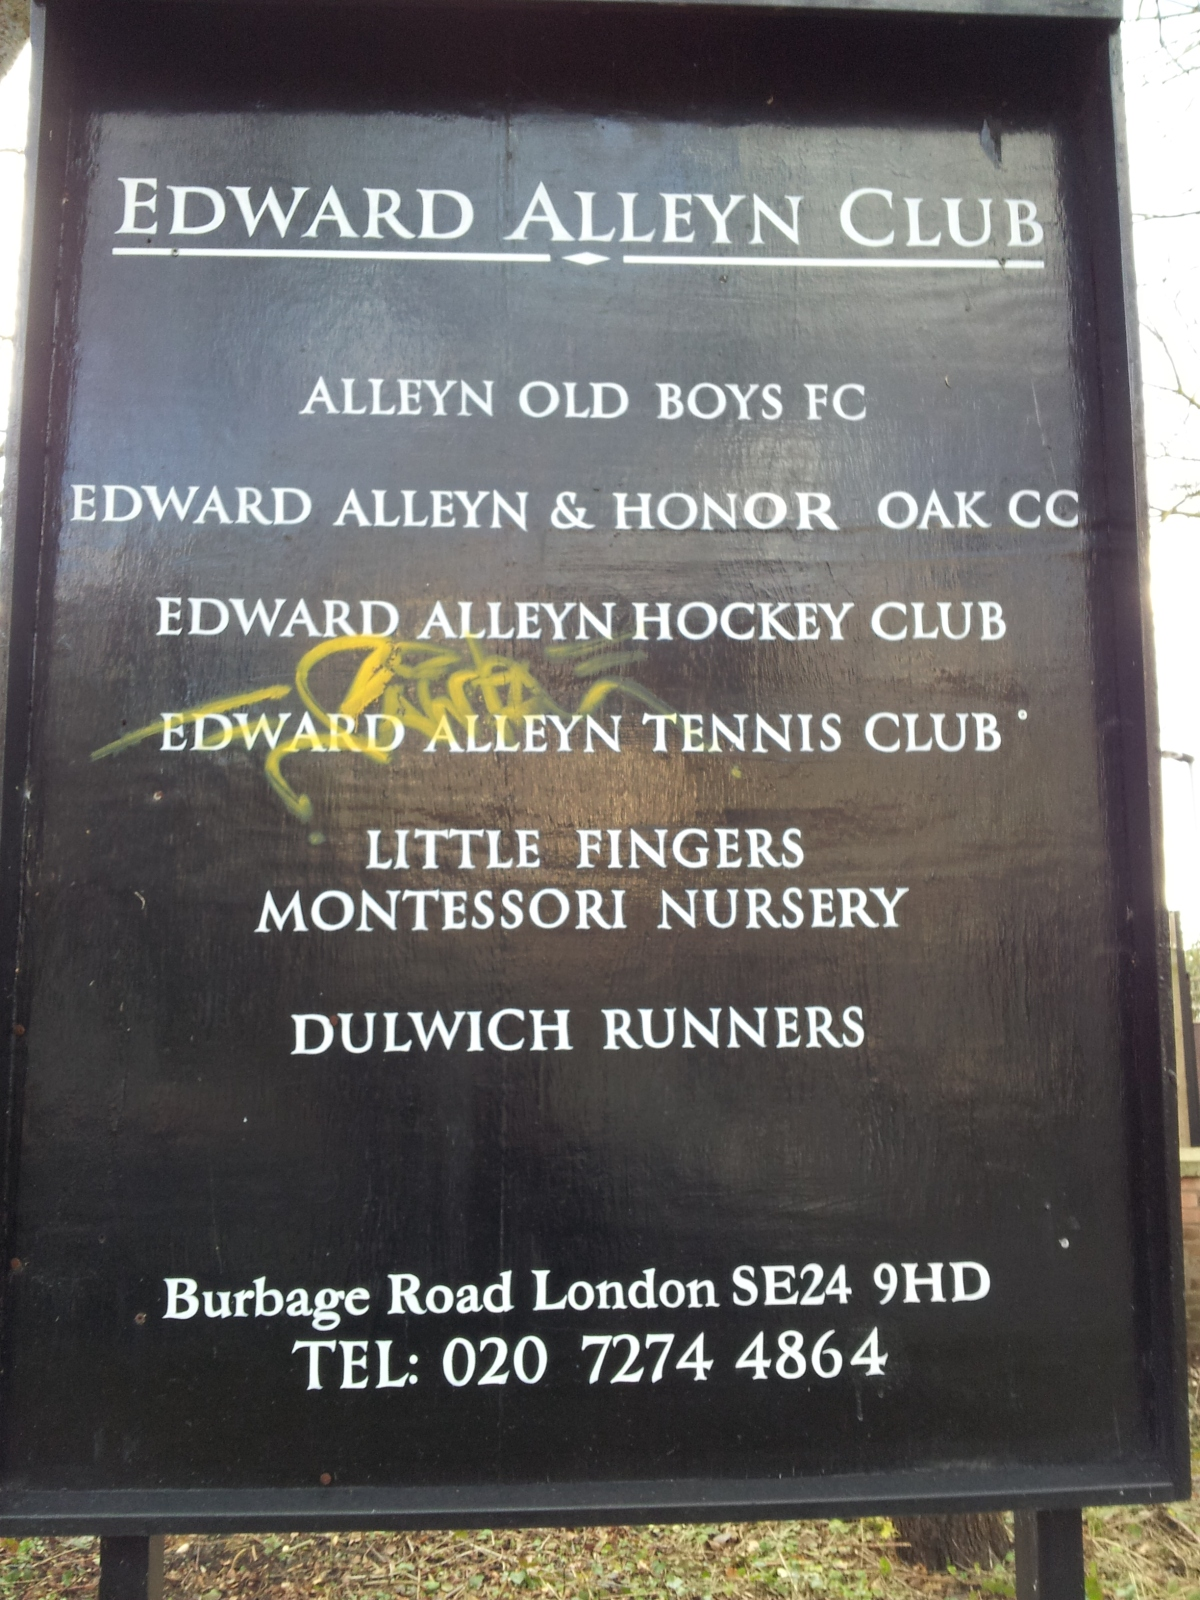 Guidelines for the Use of the Edward Alleyn Club Sportsfield